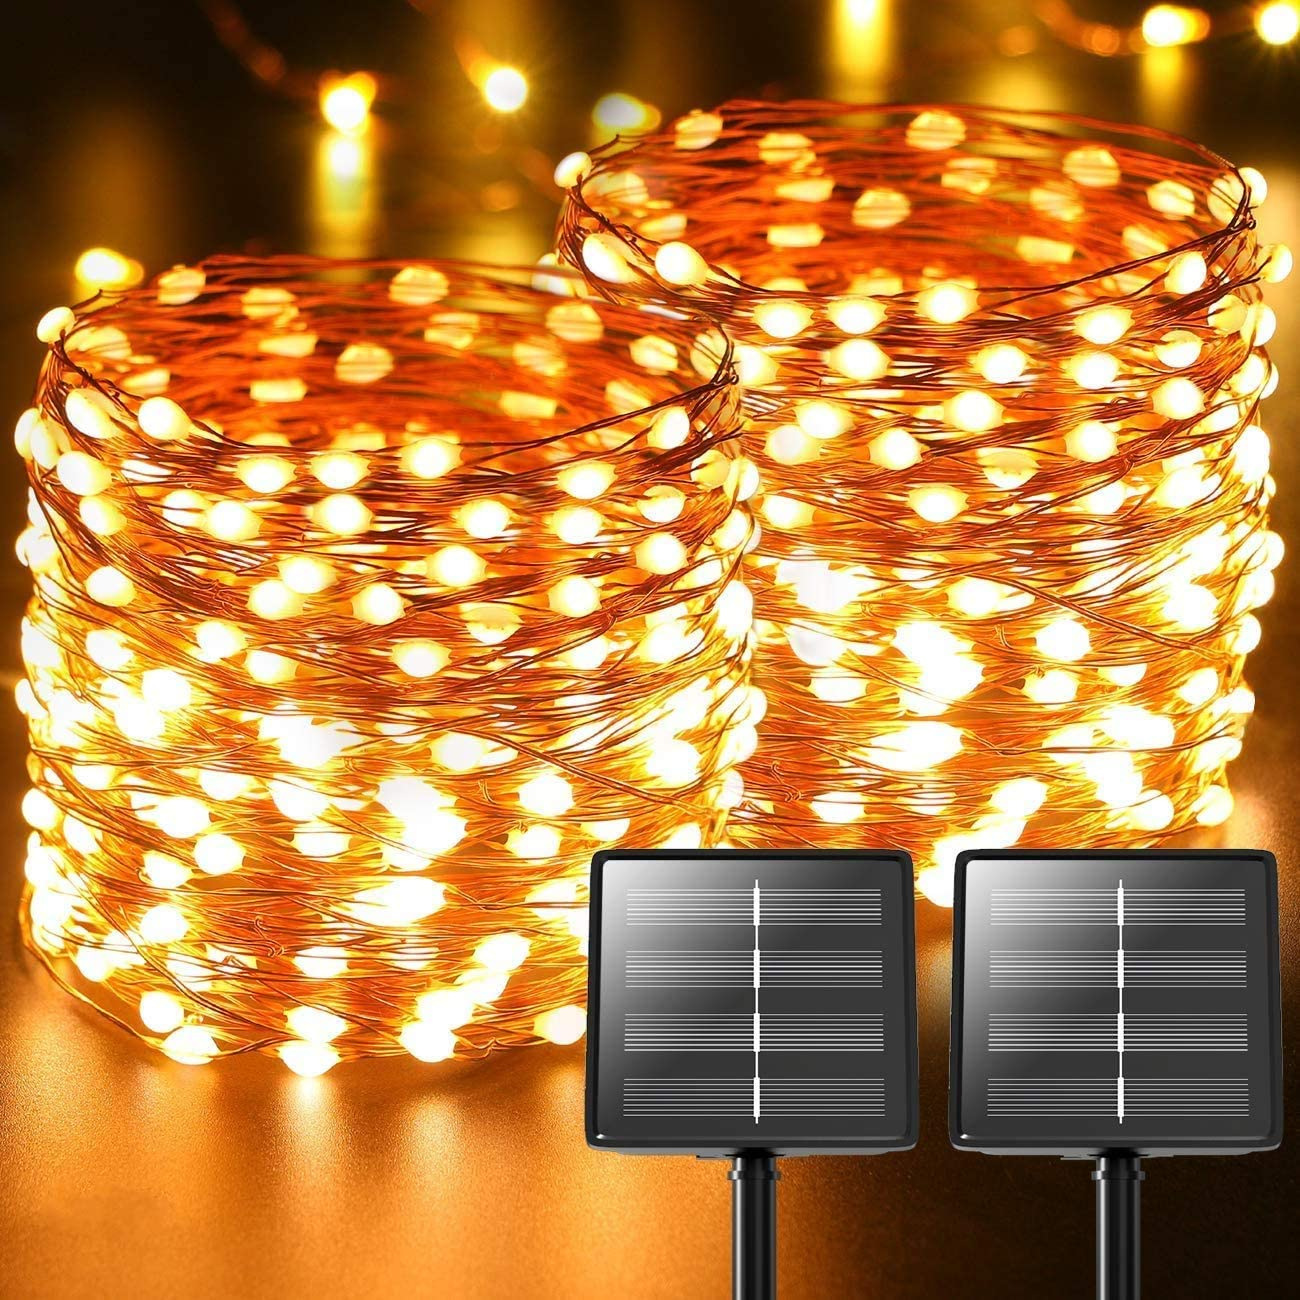 2-Pack 480 LED Solar Fairy Lights Outdoor, Total 170ft Copper Wire Lights Porch Garden Decor, Waterproof Solar Rope Lights for Decor Backyard Trees Christmas